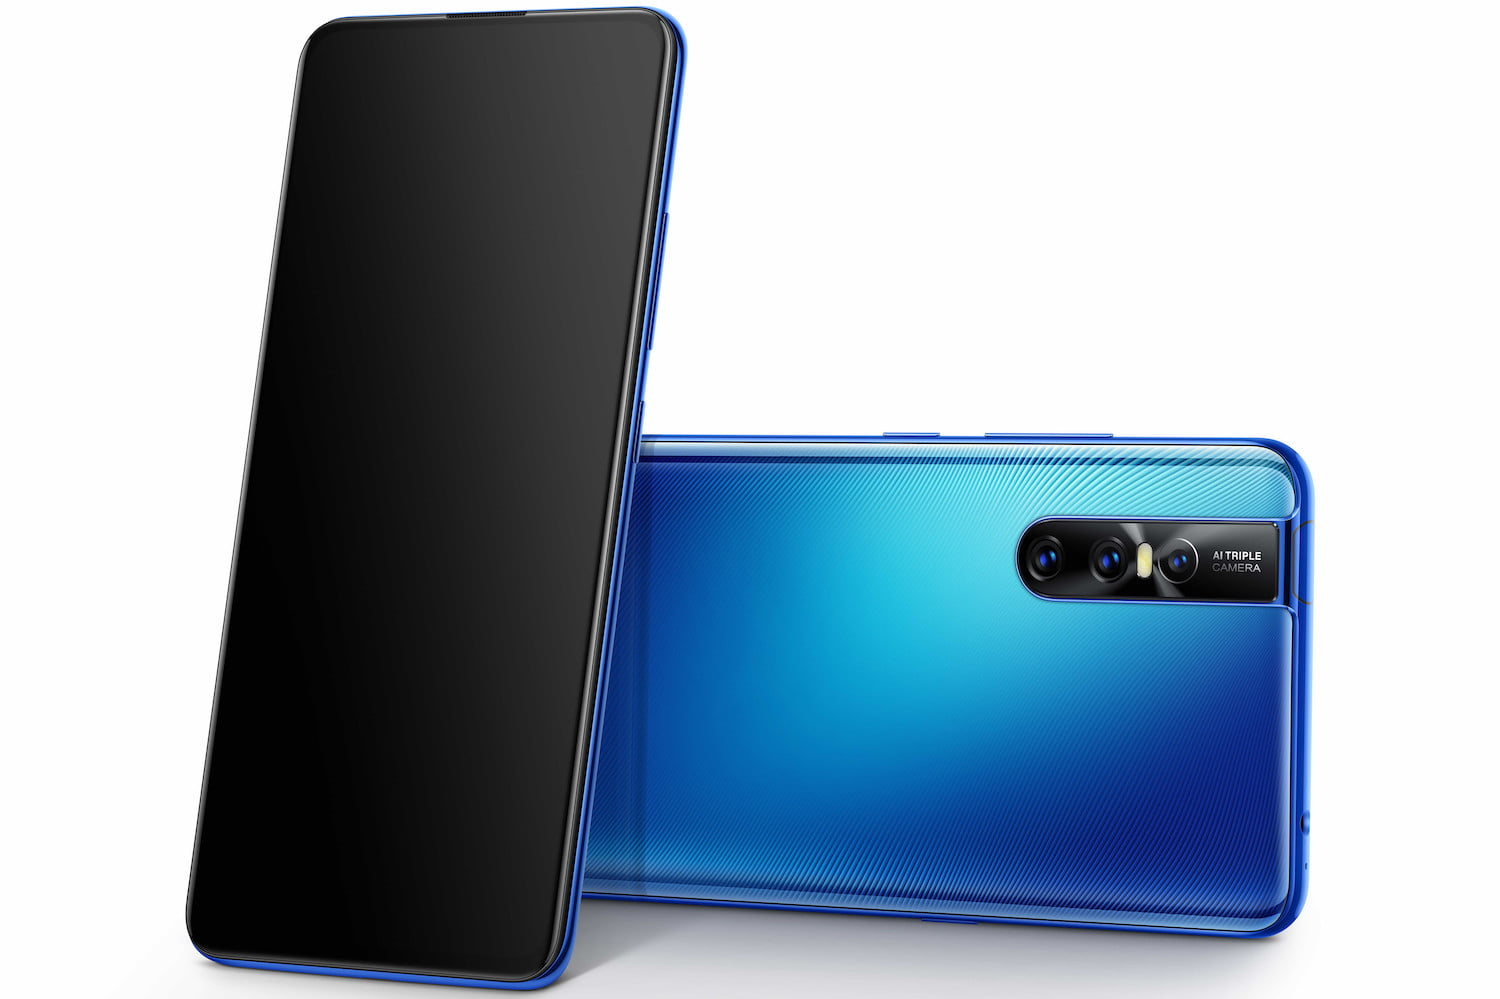 To Avoid the Notch, the Vivo V15 Pro has a Secret Selfie